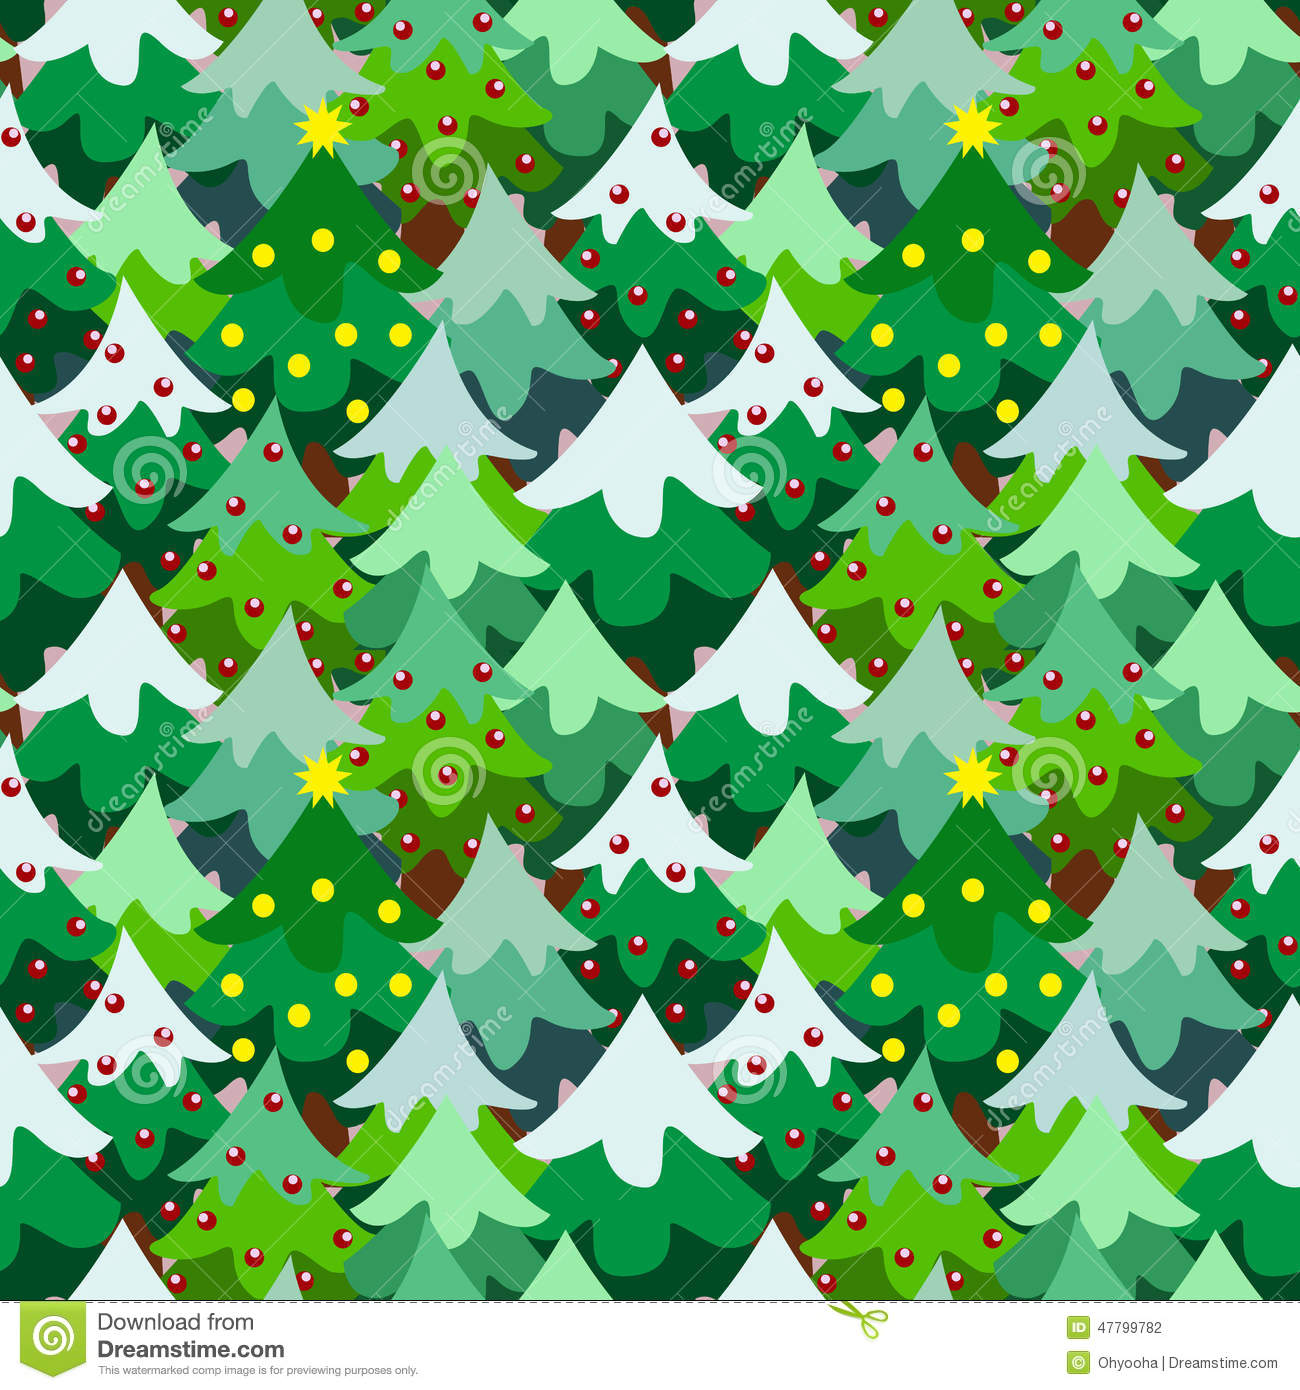 Christmas Theme Pine Tree Forest Seamless Pattern Stock Vector - Image ...